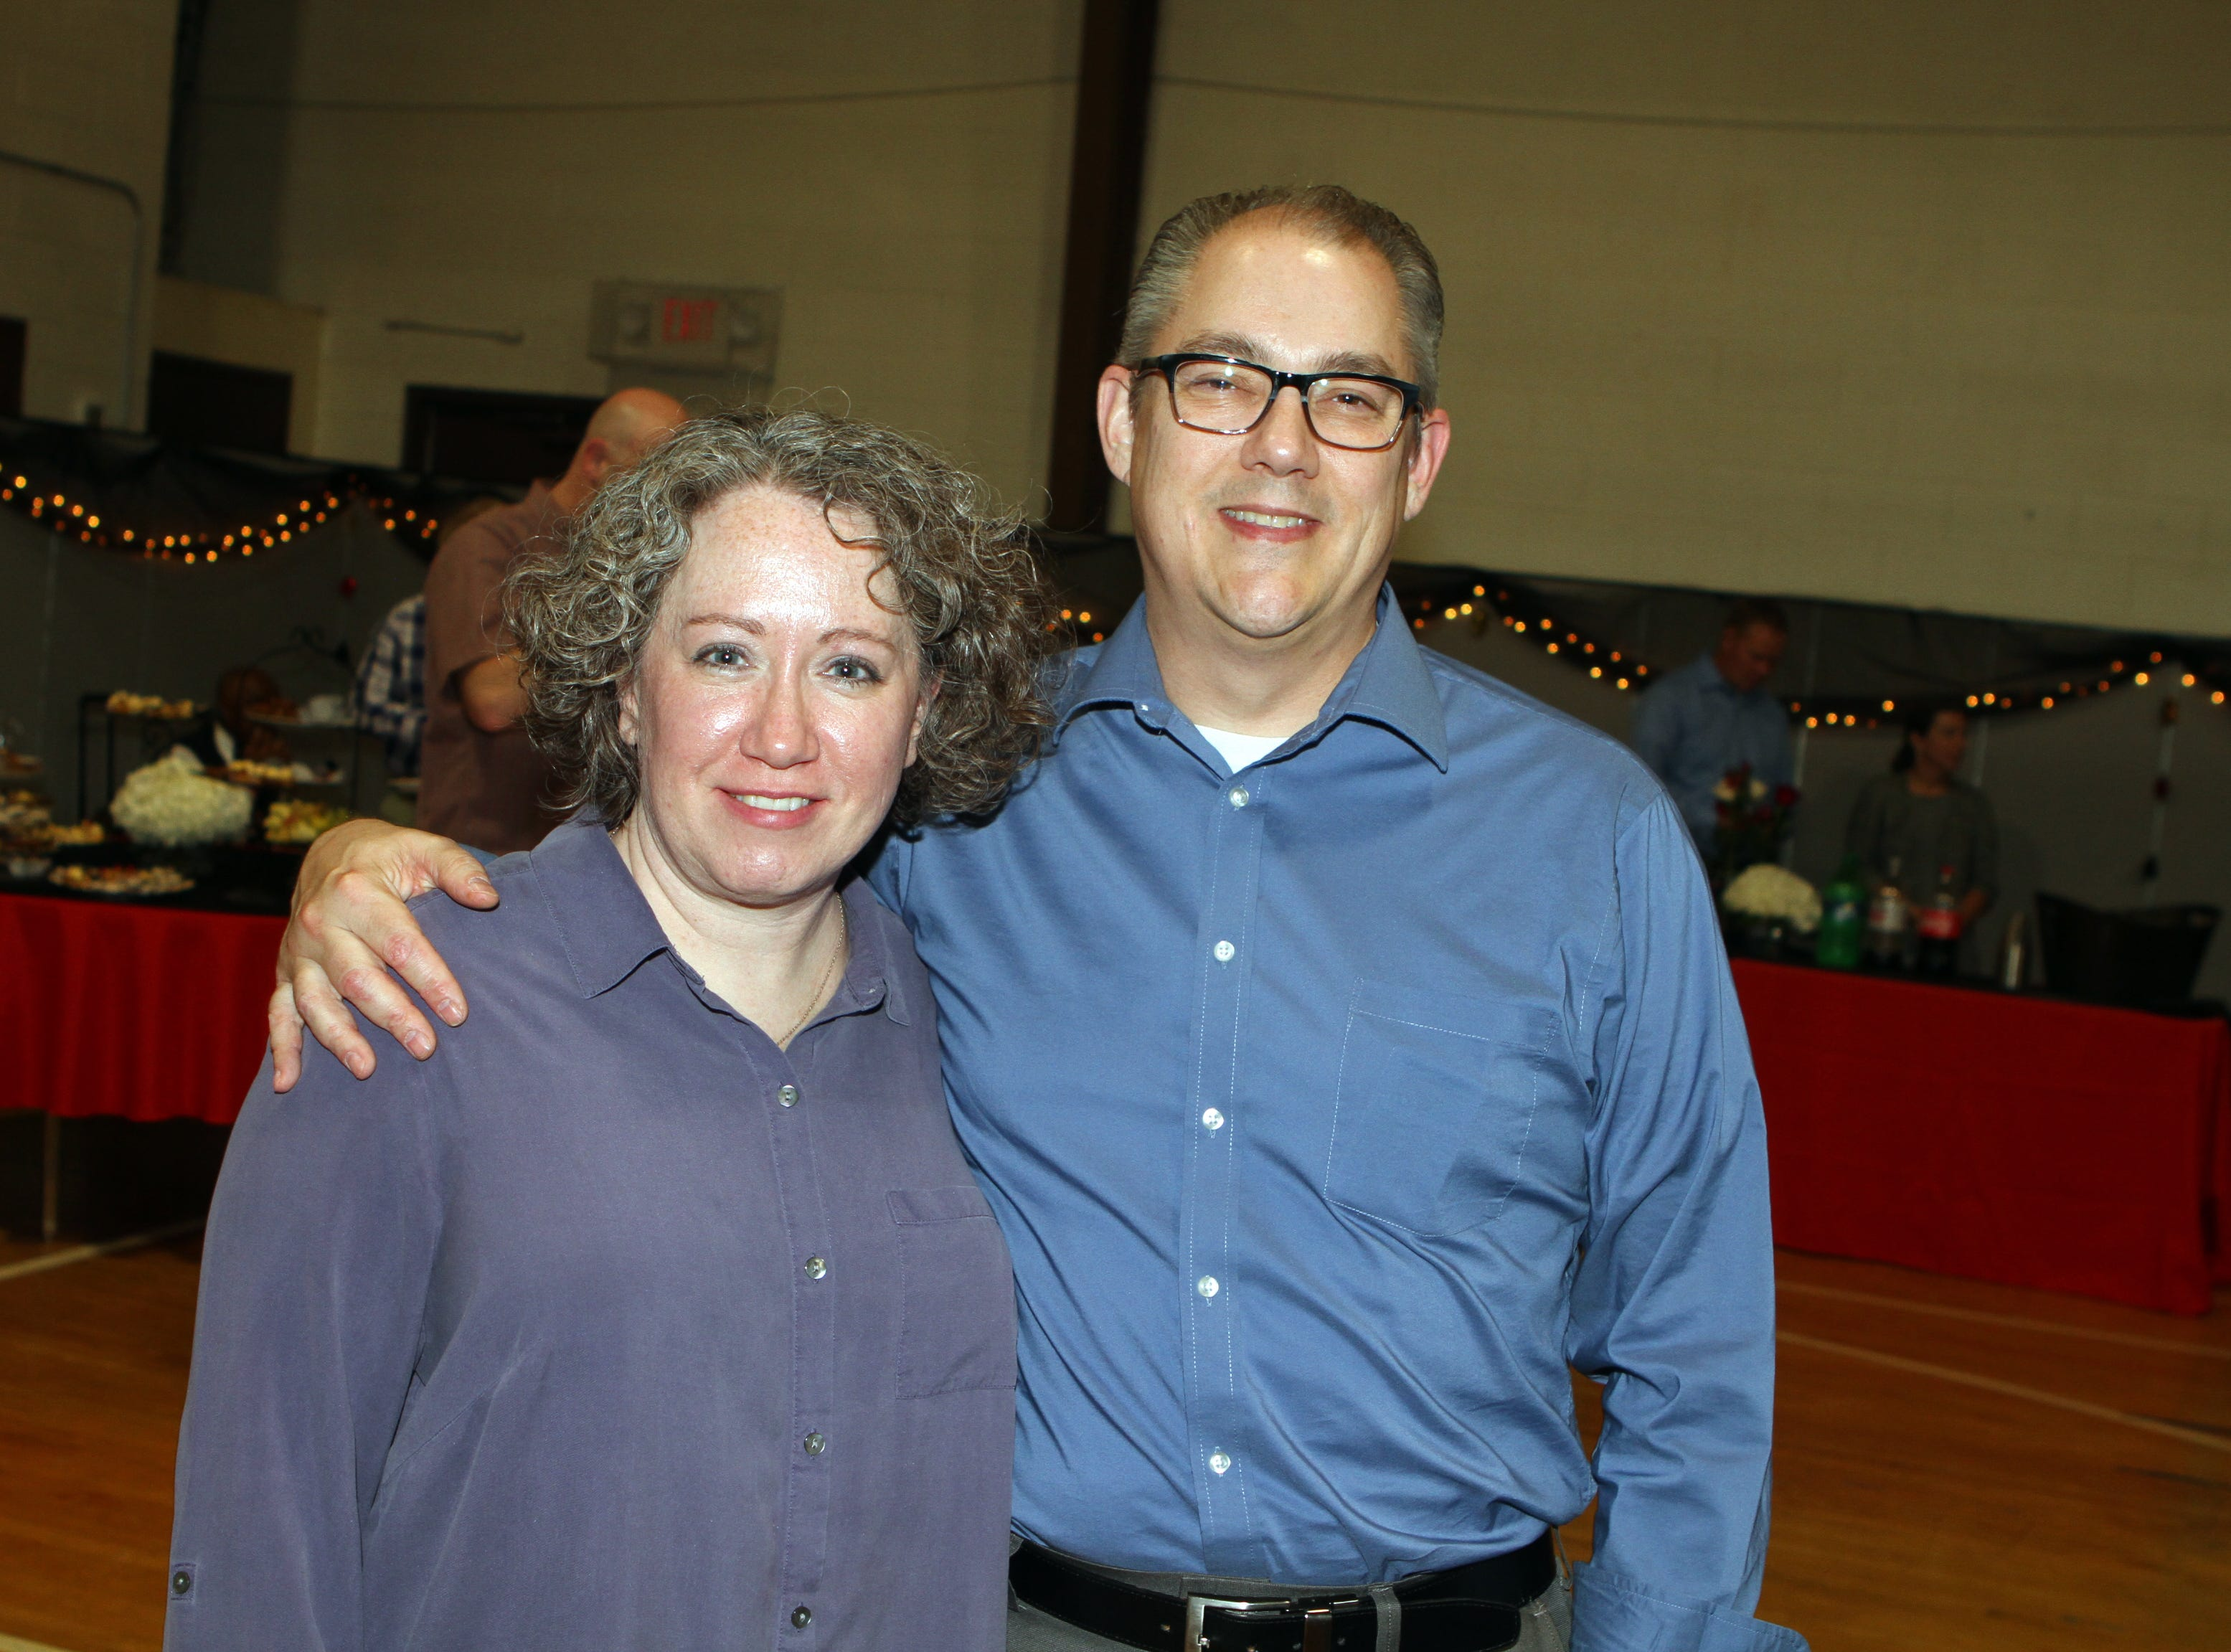 Stephanie and Chuck Stafford at Casino Night at Immaculate Conception School on Saturday, Nov. 3, 2018.